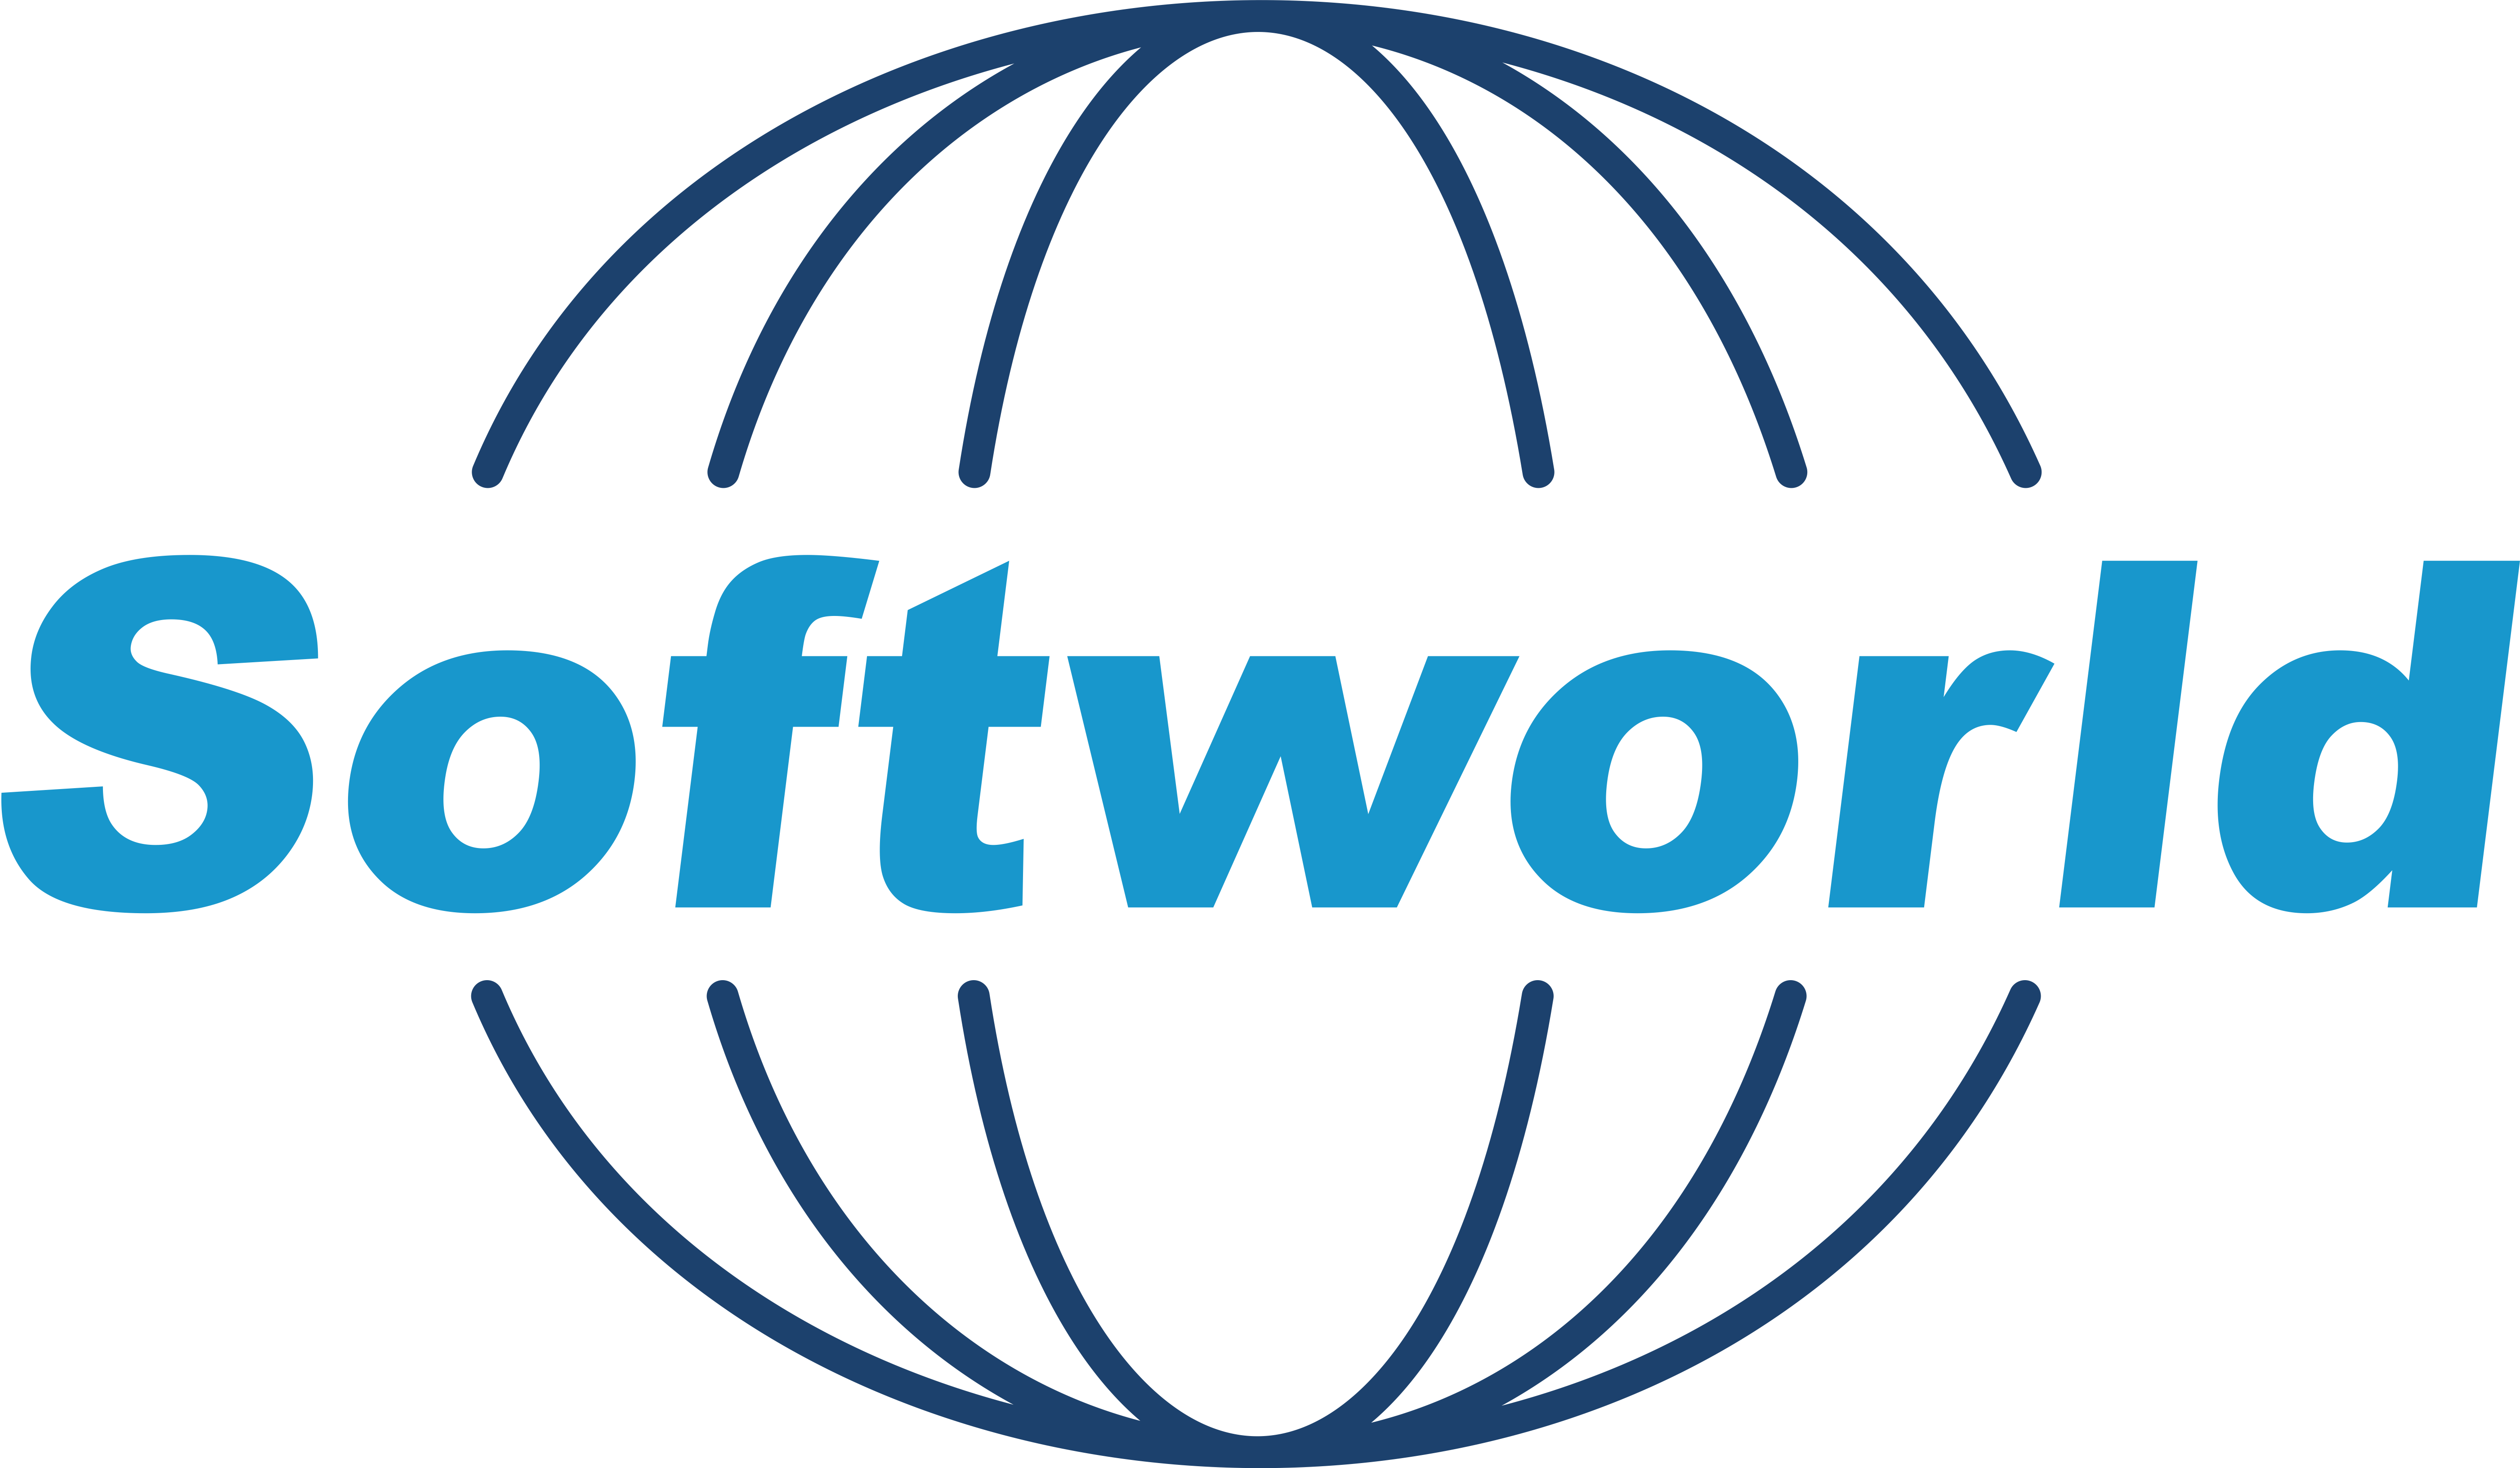 Softworld